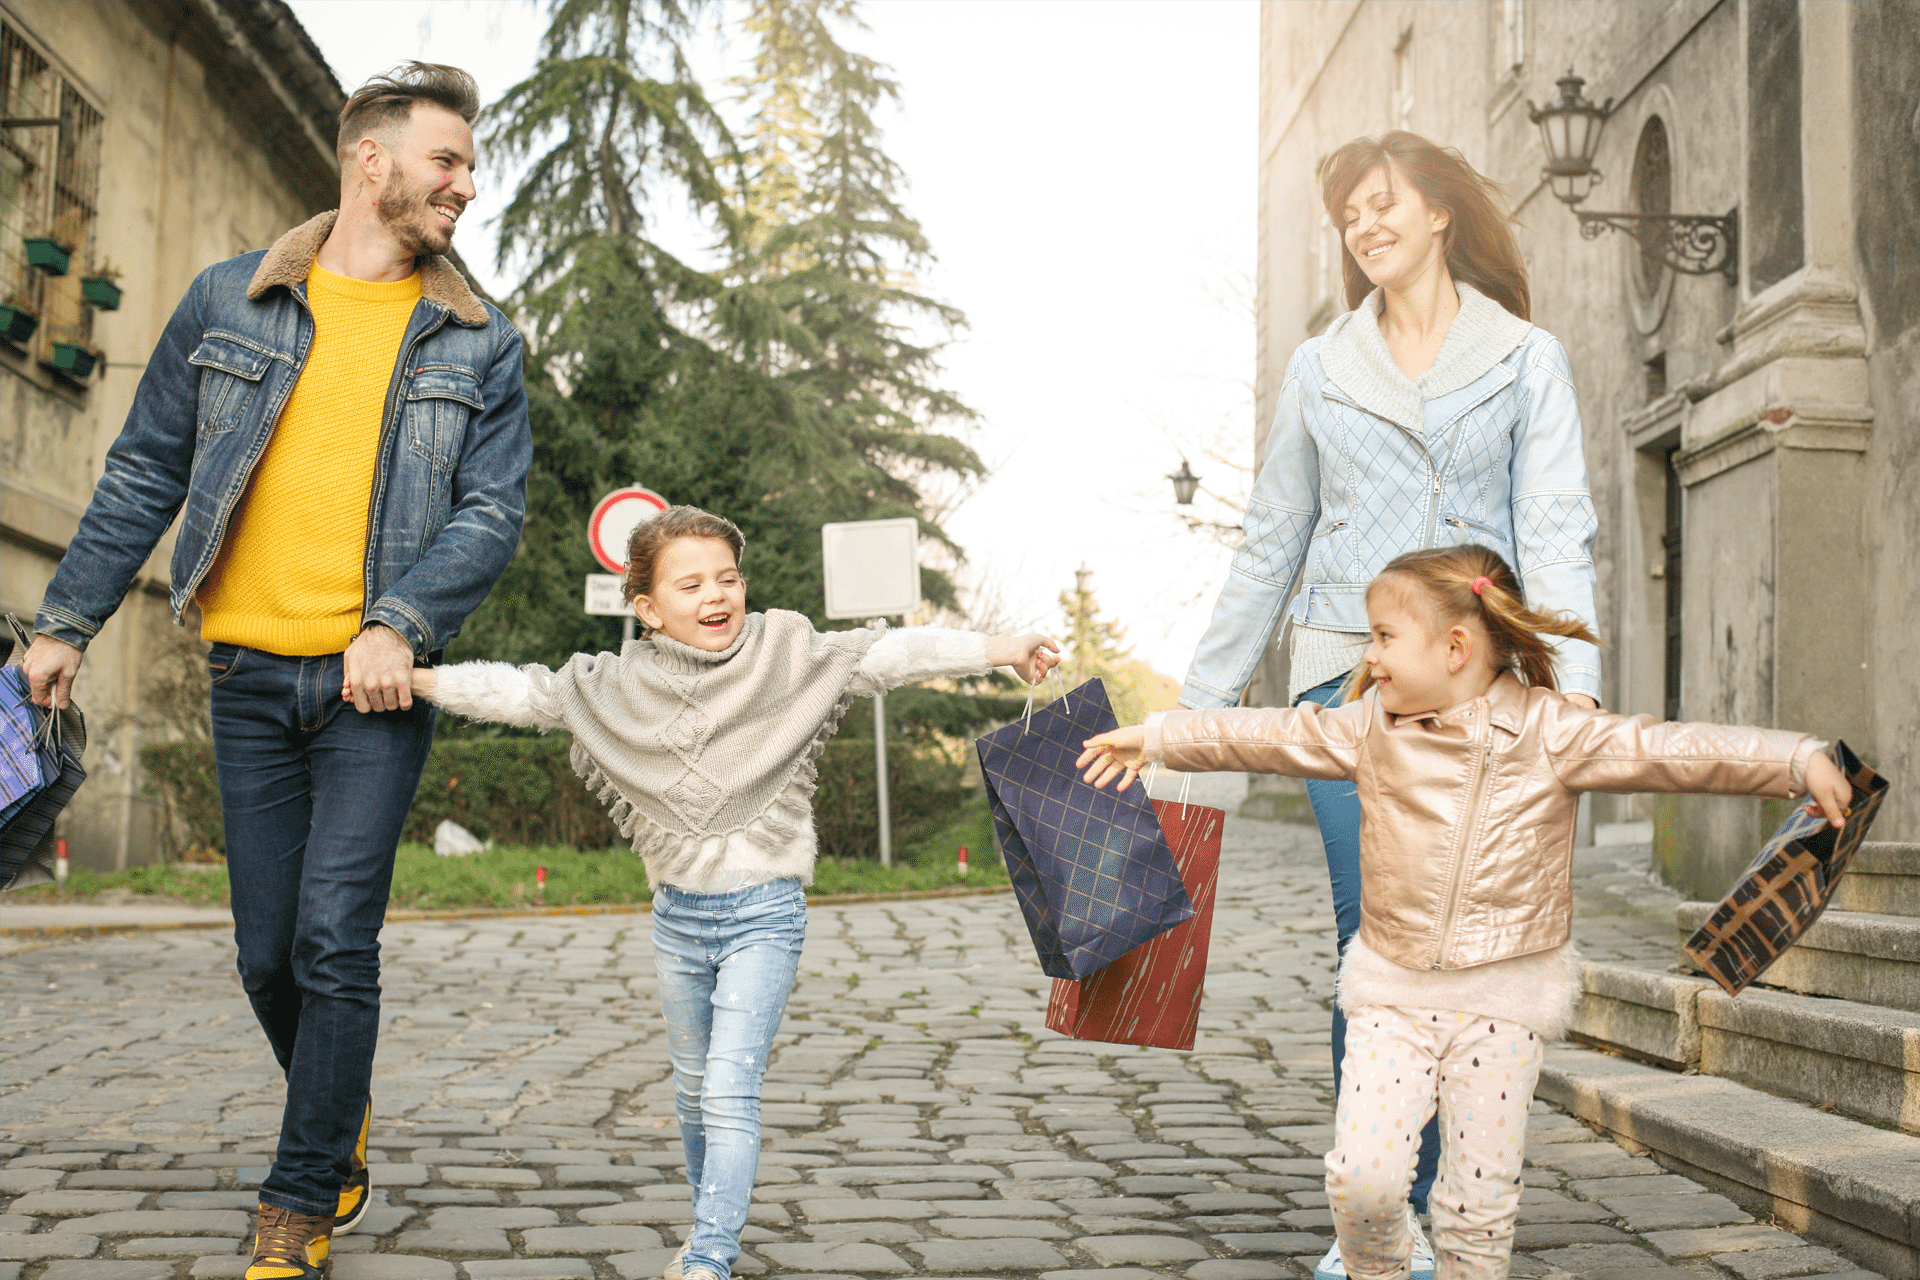 Family smiling together while walking through a courtyard